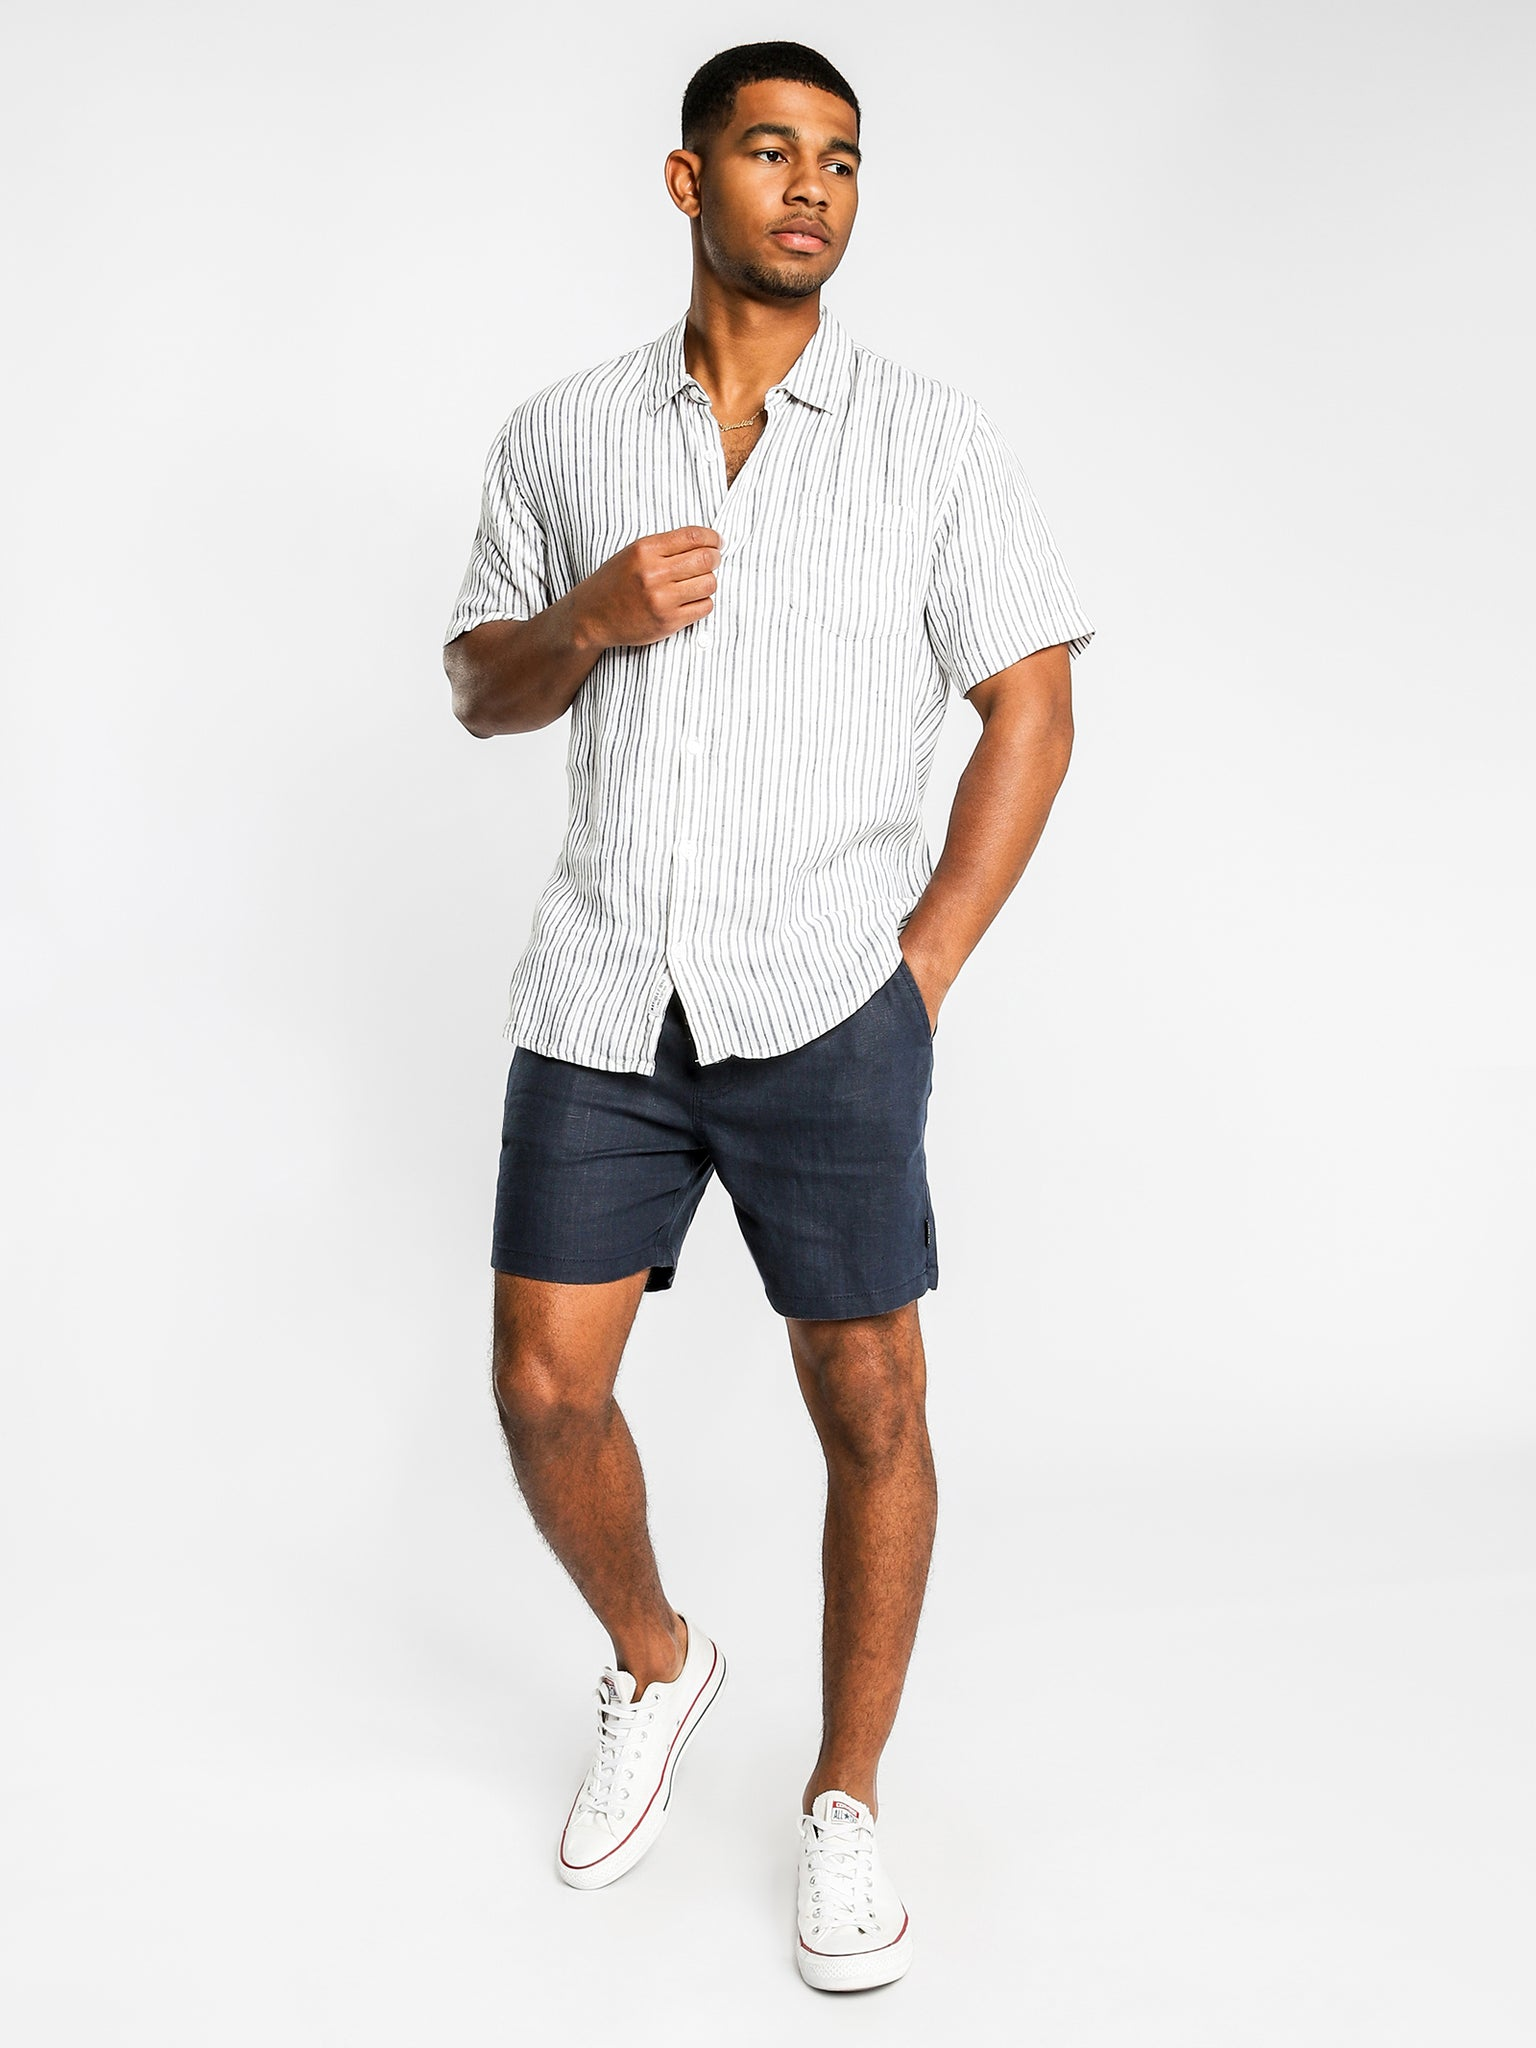 Noosa Linen Draw-short in Navy or Washed Olive, Mens Shorts, Article no 1, Milu James St